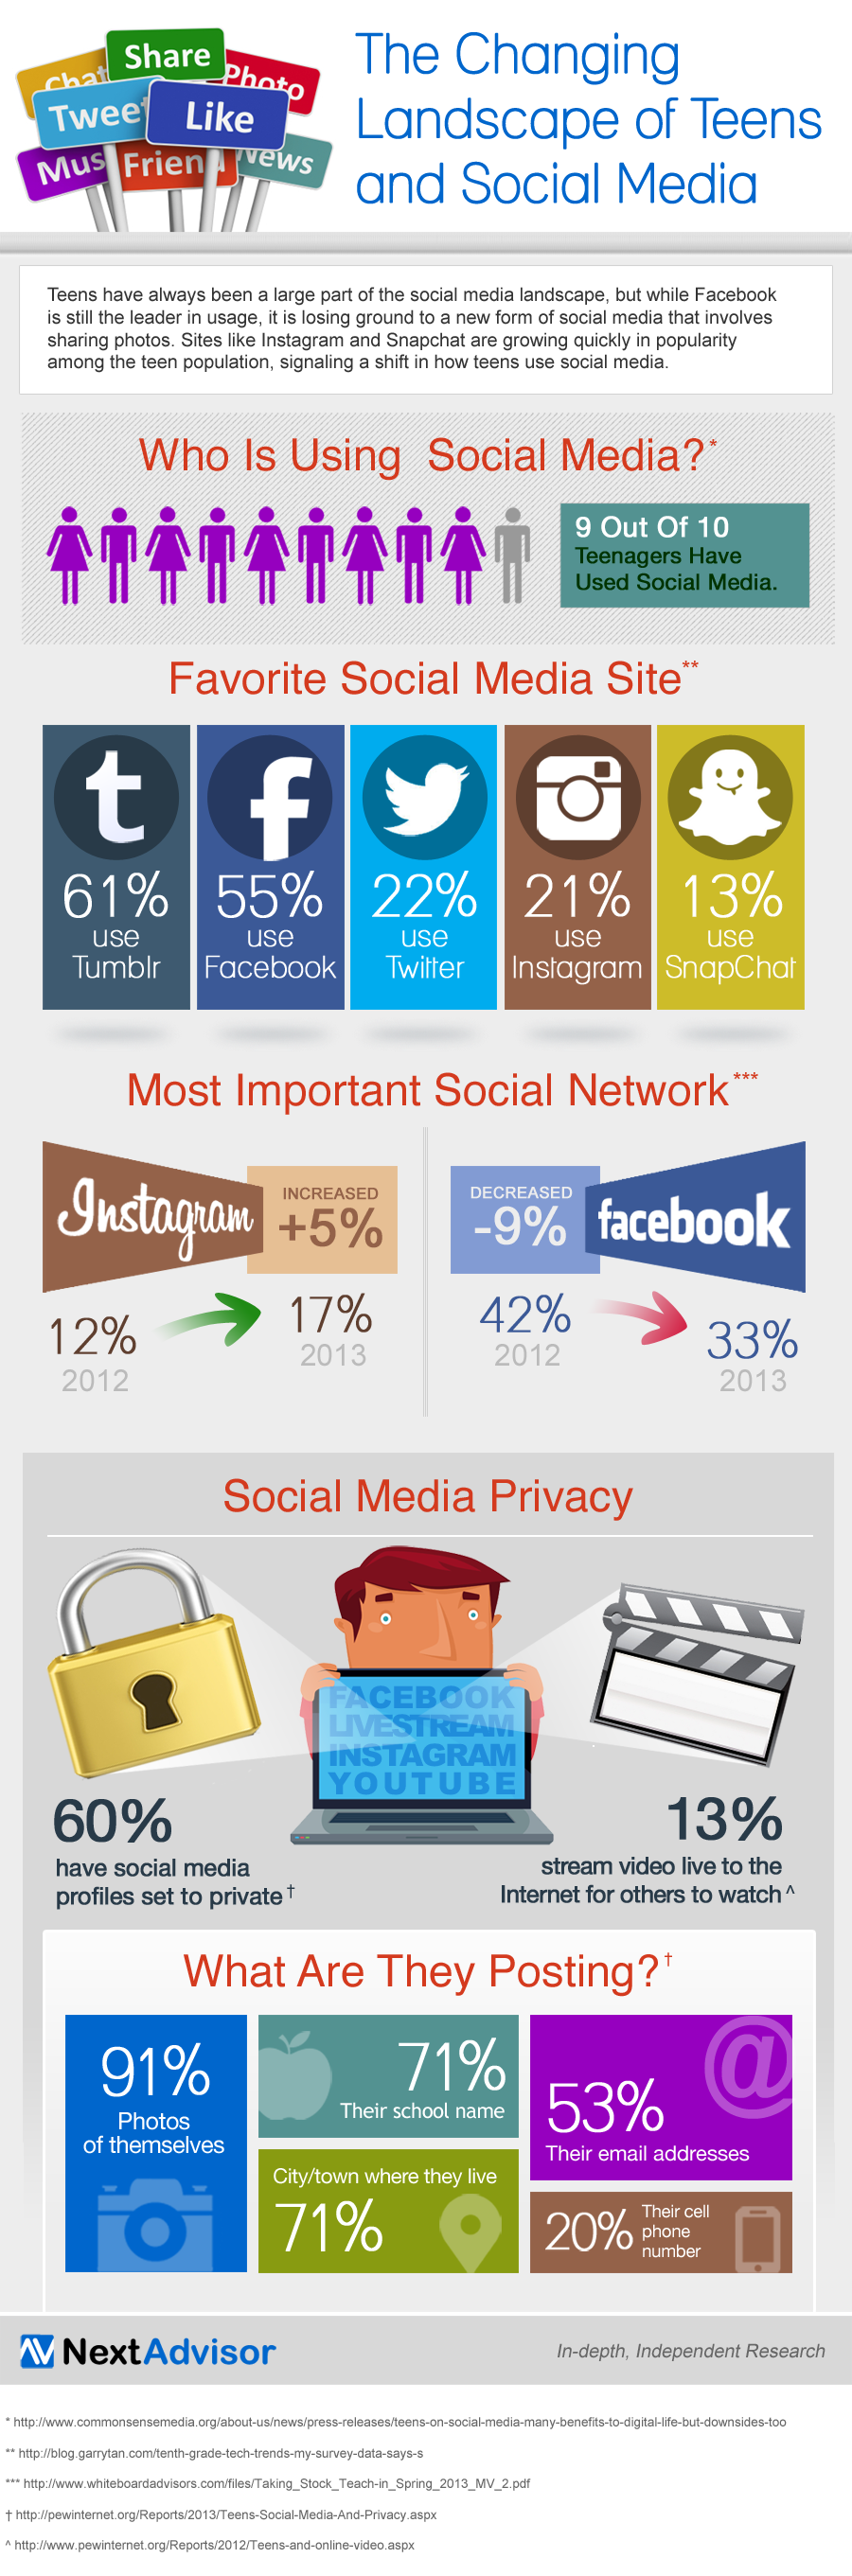 [INFOGRAPHIC] about: The Ups And Downs Of Social Media Use Among Teenagers